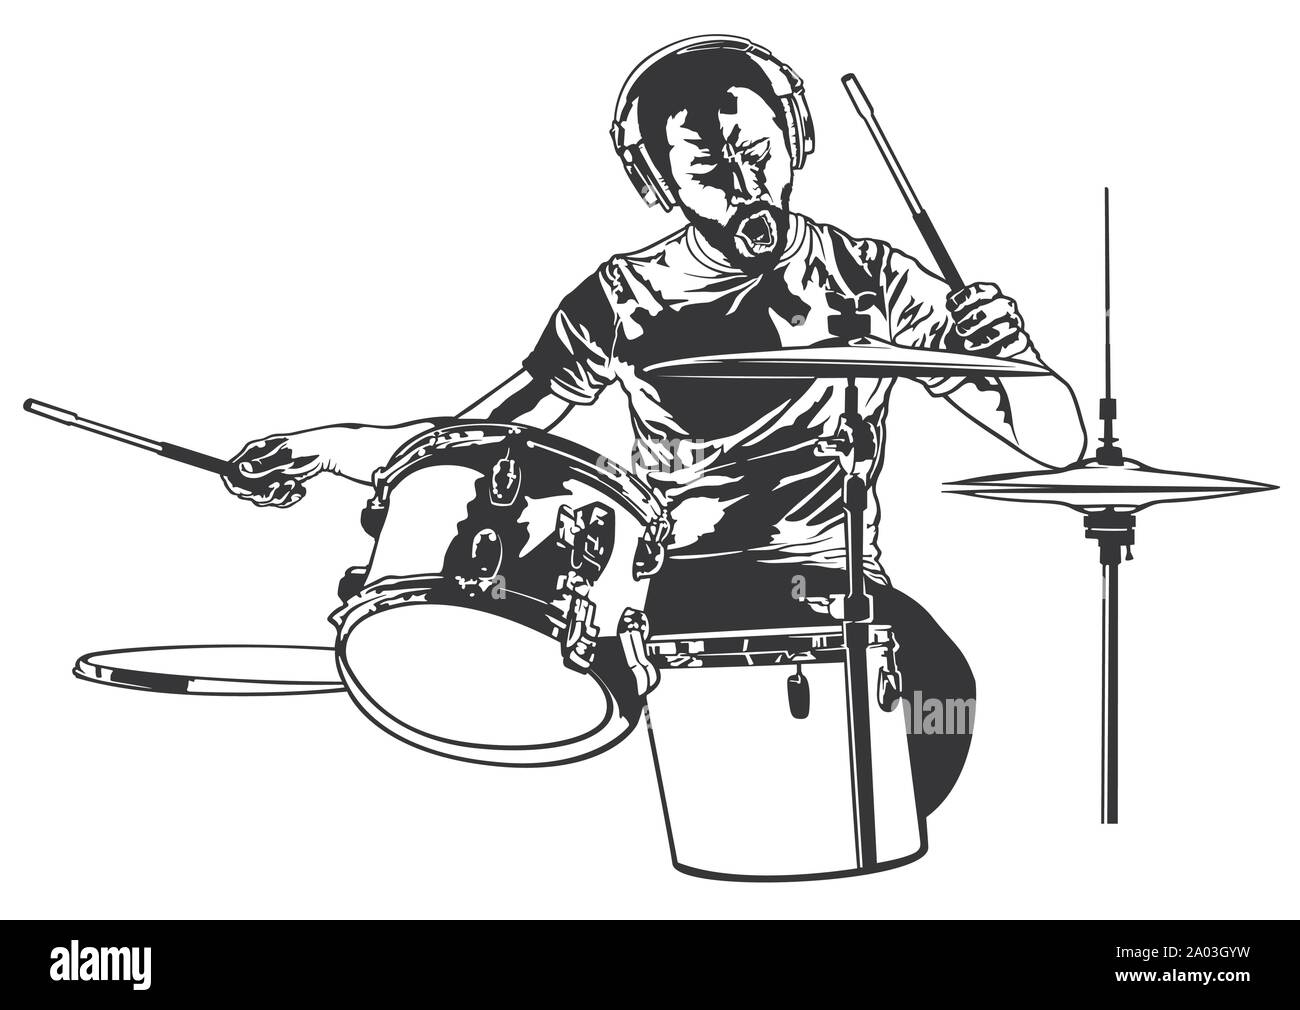 Drummer Sketch Drawing Stock Vector